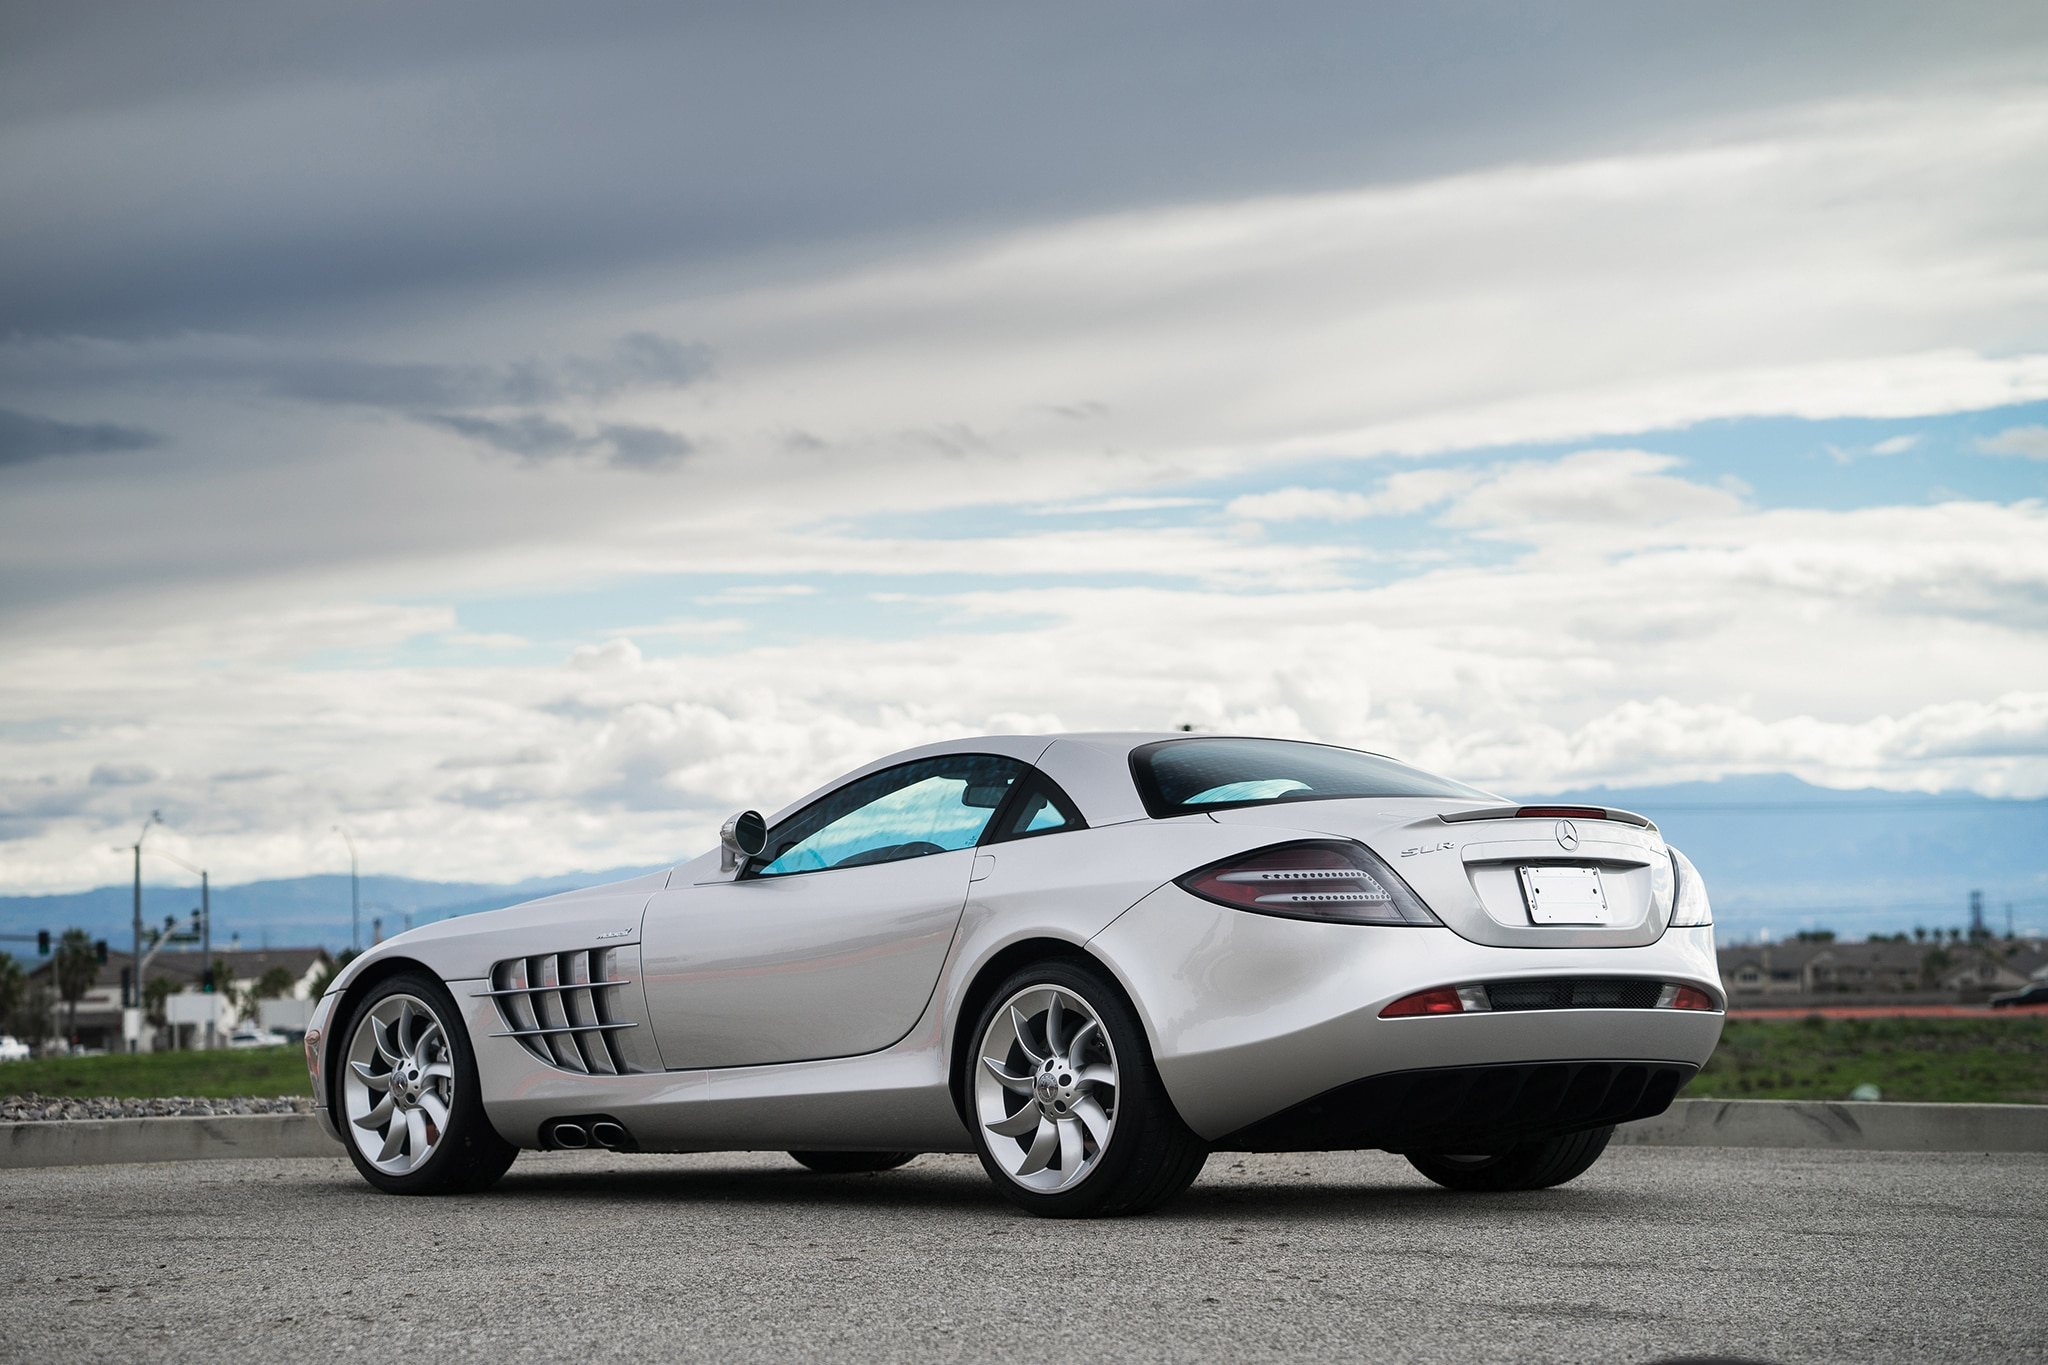 Just listed 2006 mercedes benz slr mclaren coupe for Mercedes benz slr